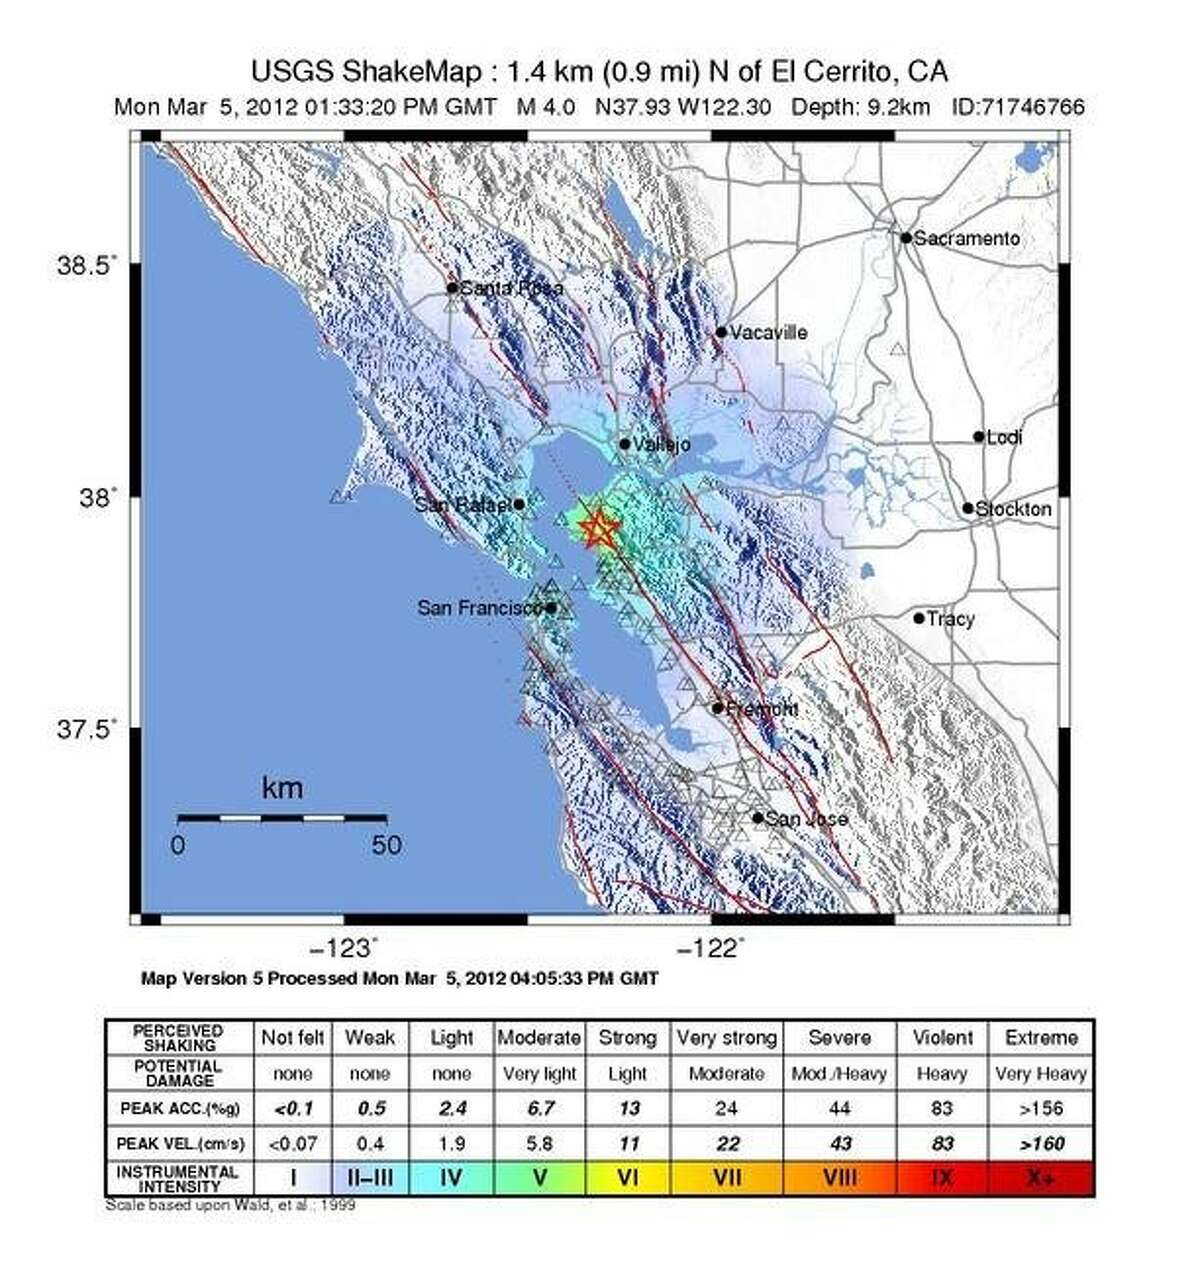 Location and intensity of a 4.0 earthquake that struck near El Cerrito, Calif. this morning.